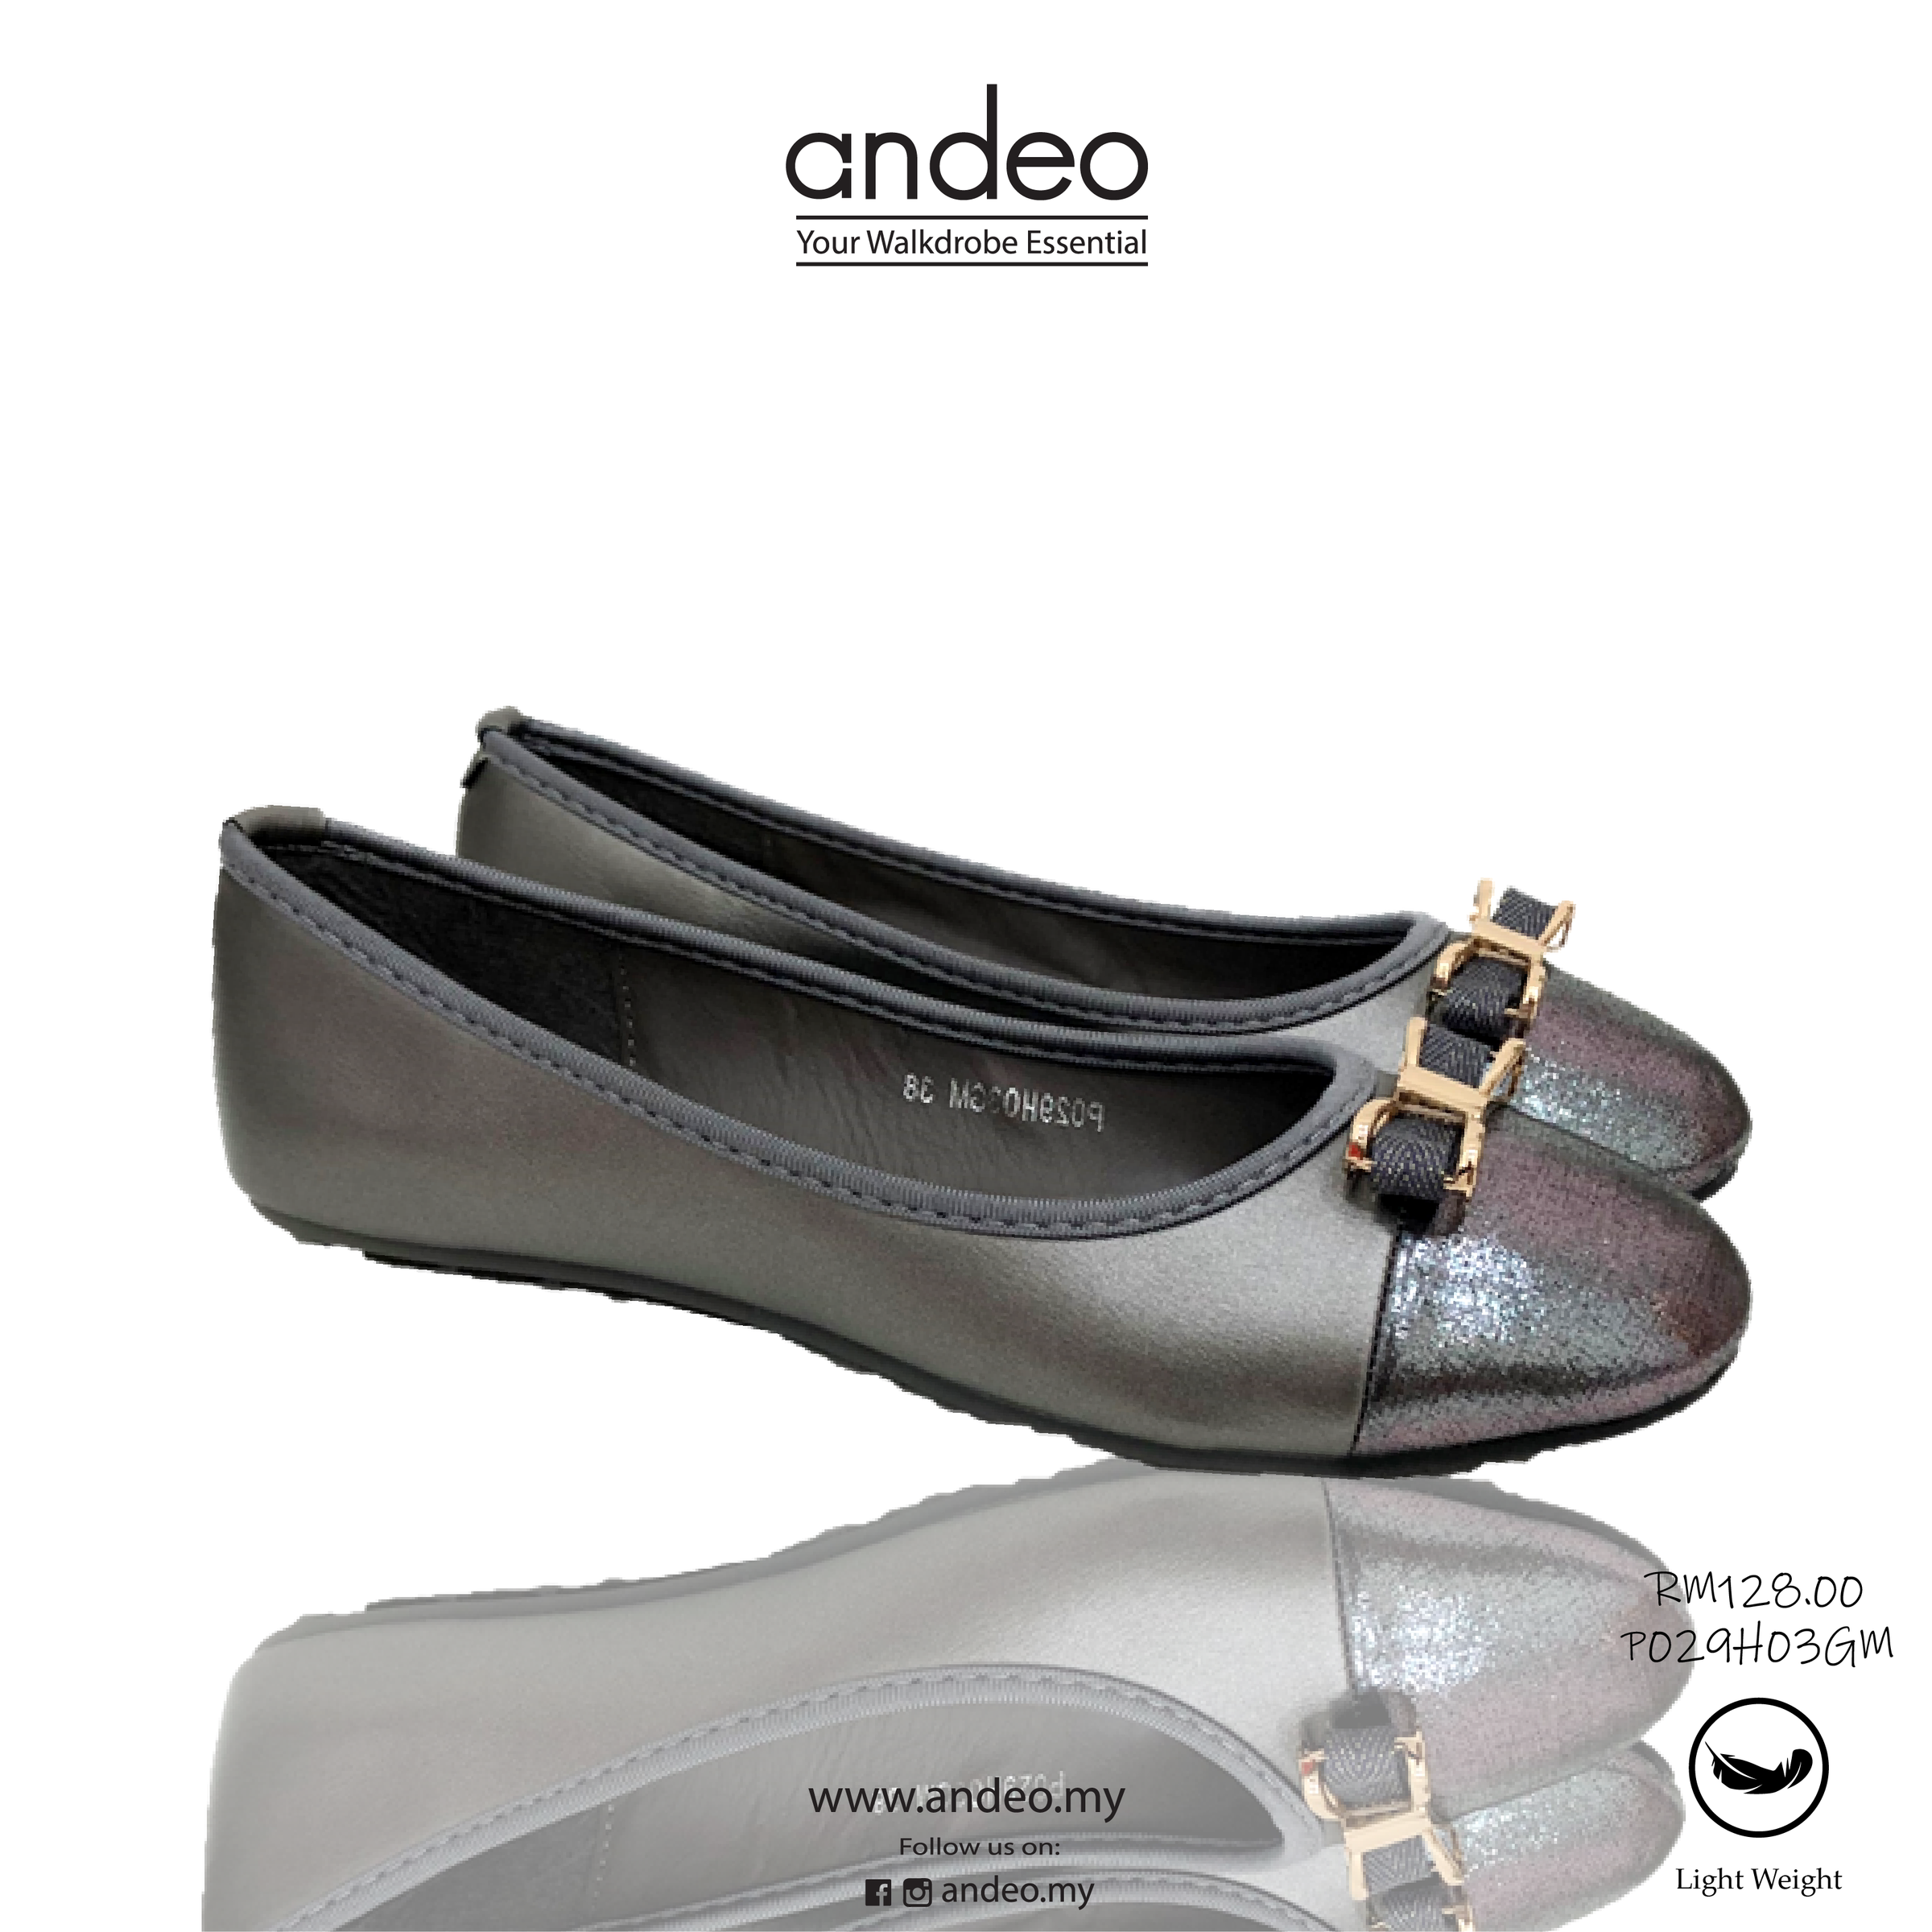 ANDEO FB PRODUCT P029H03(R)-03.png